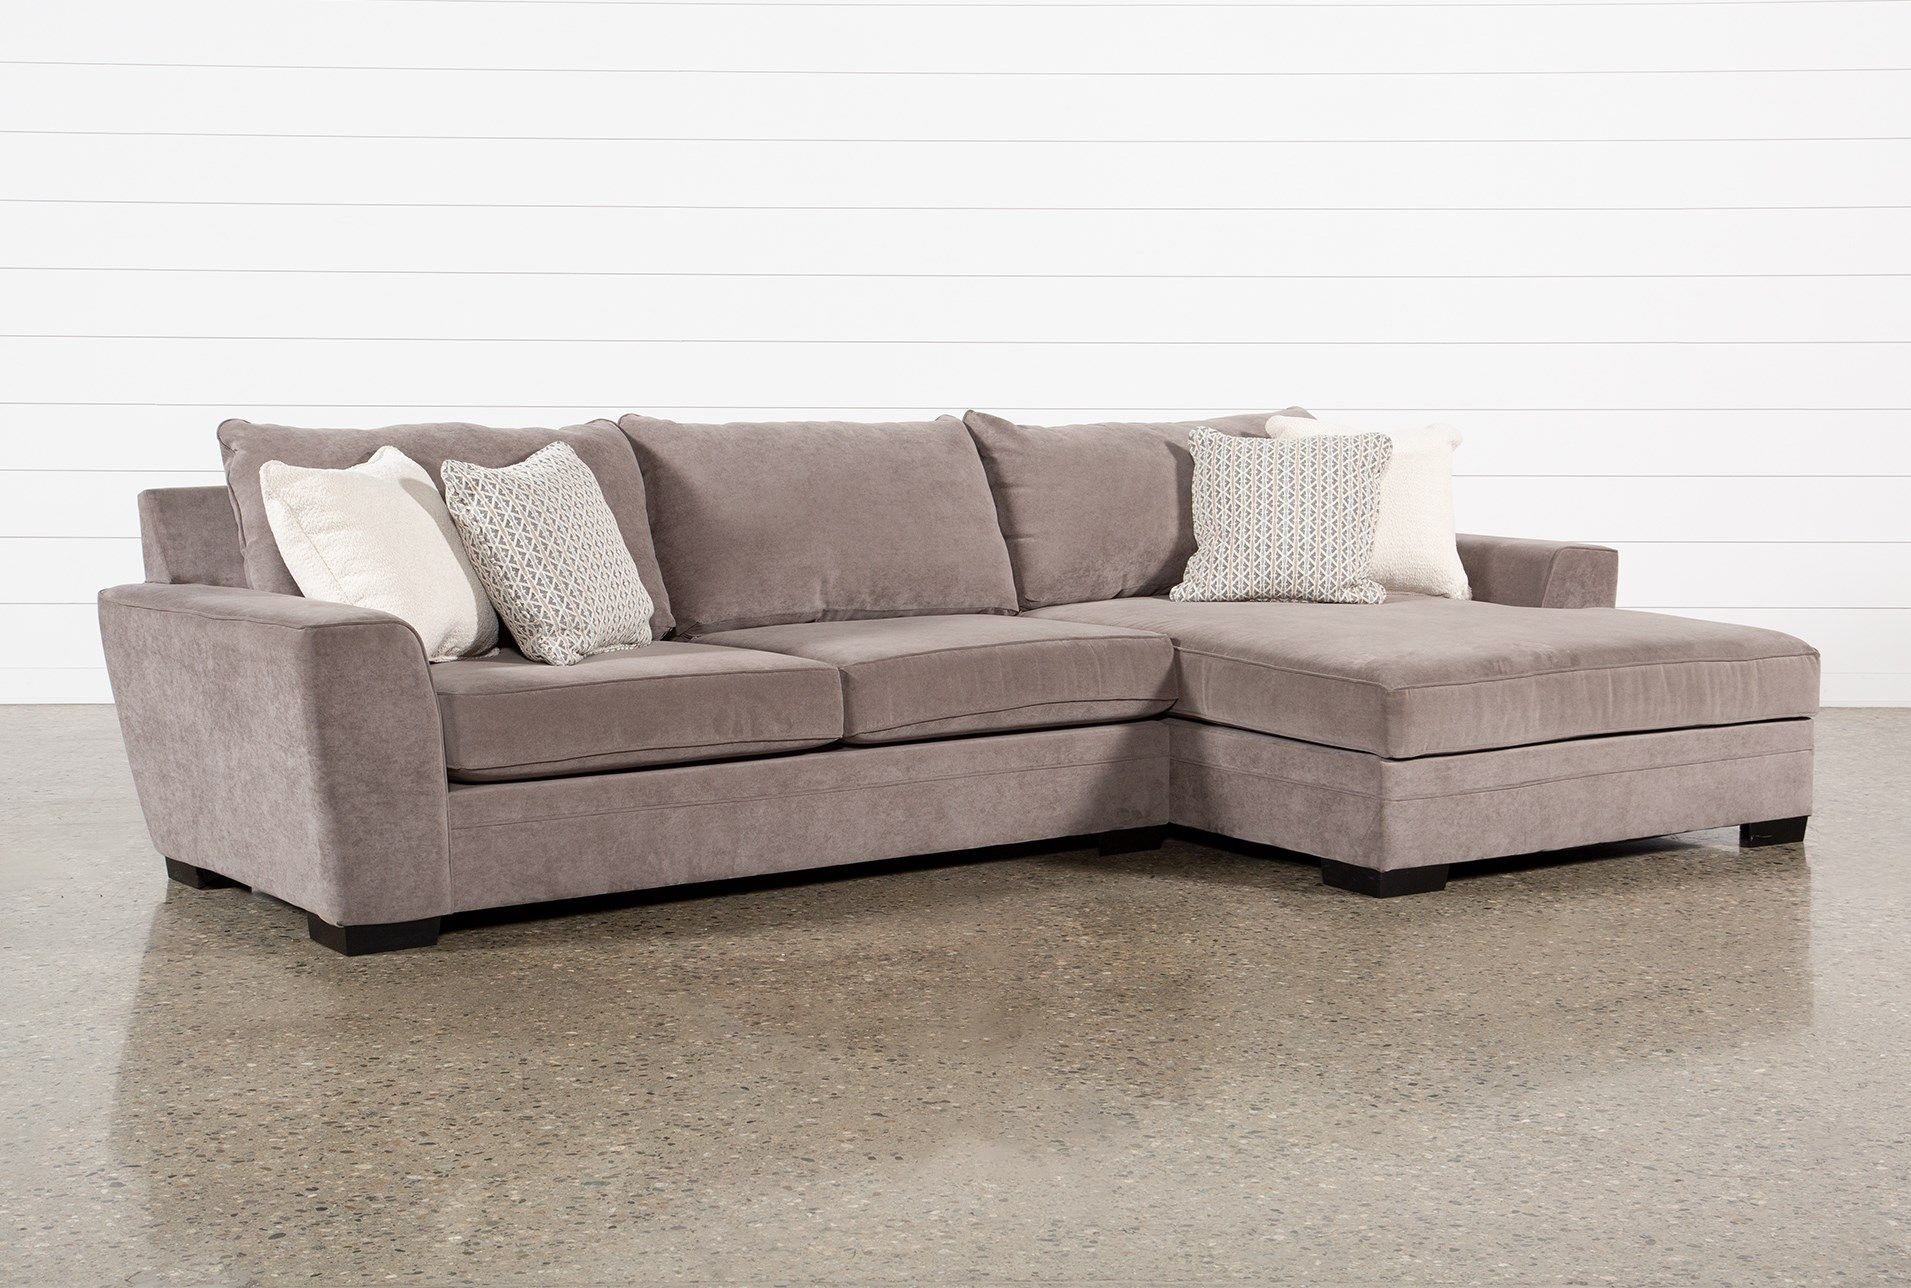 Delano Charcoal 2 Piece Sectional With Right Arm Facing Pertaining To Delano 2 Piece Sectionals With Laf Oversized Chaise (View 6 of 15)